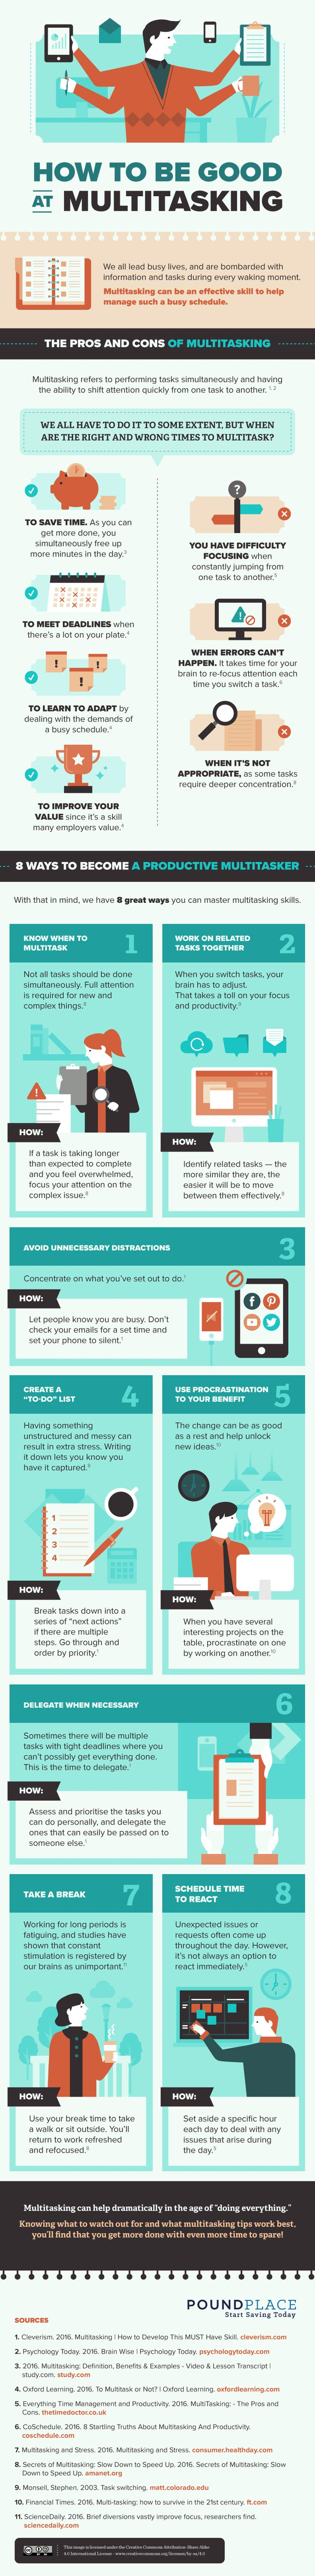 How To Streamline Your Multitasking At Work (infographic)